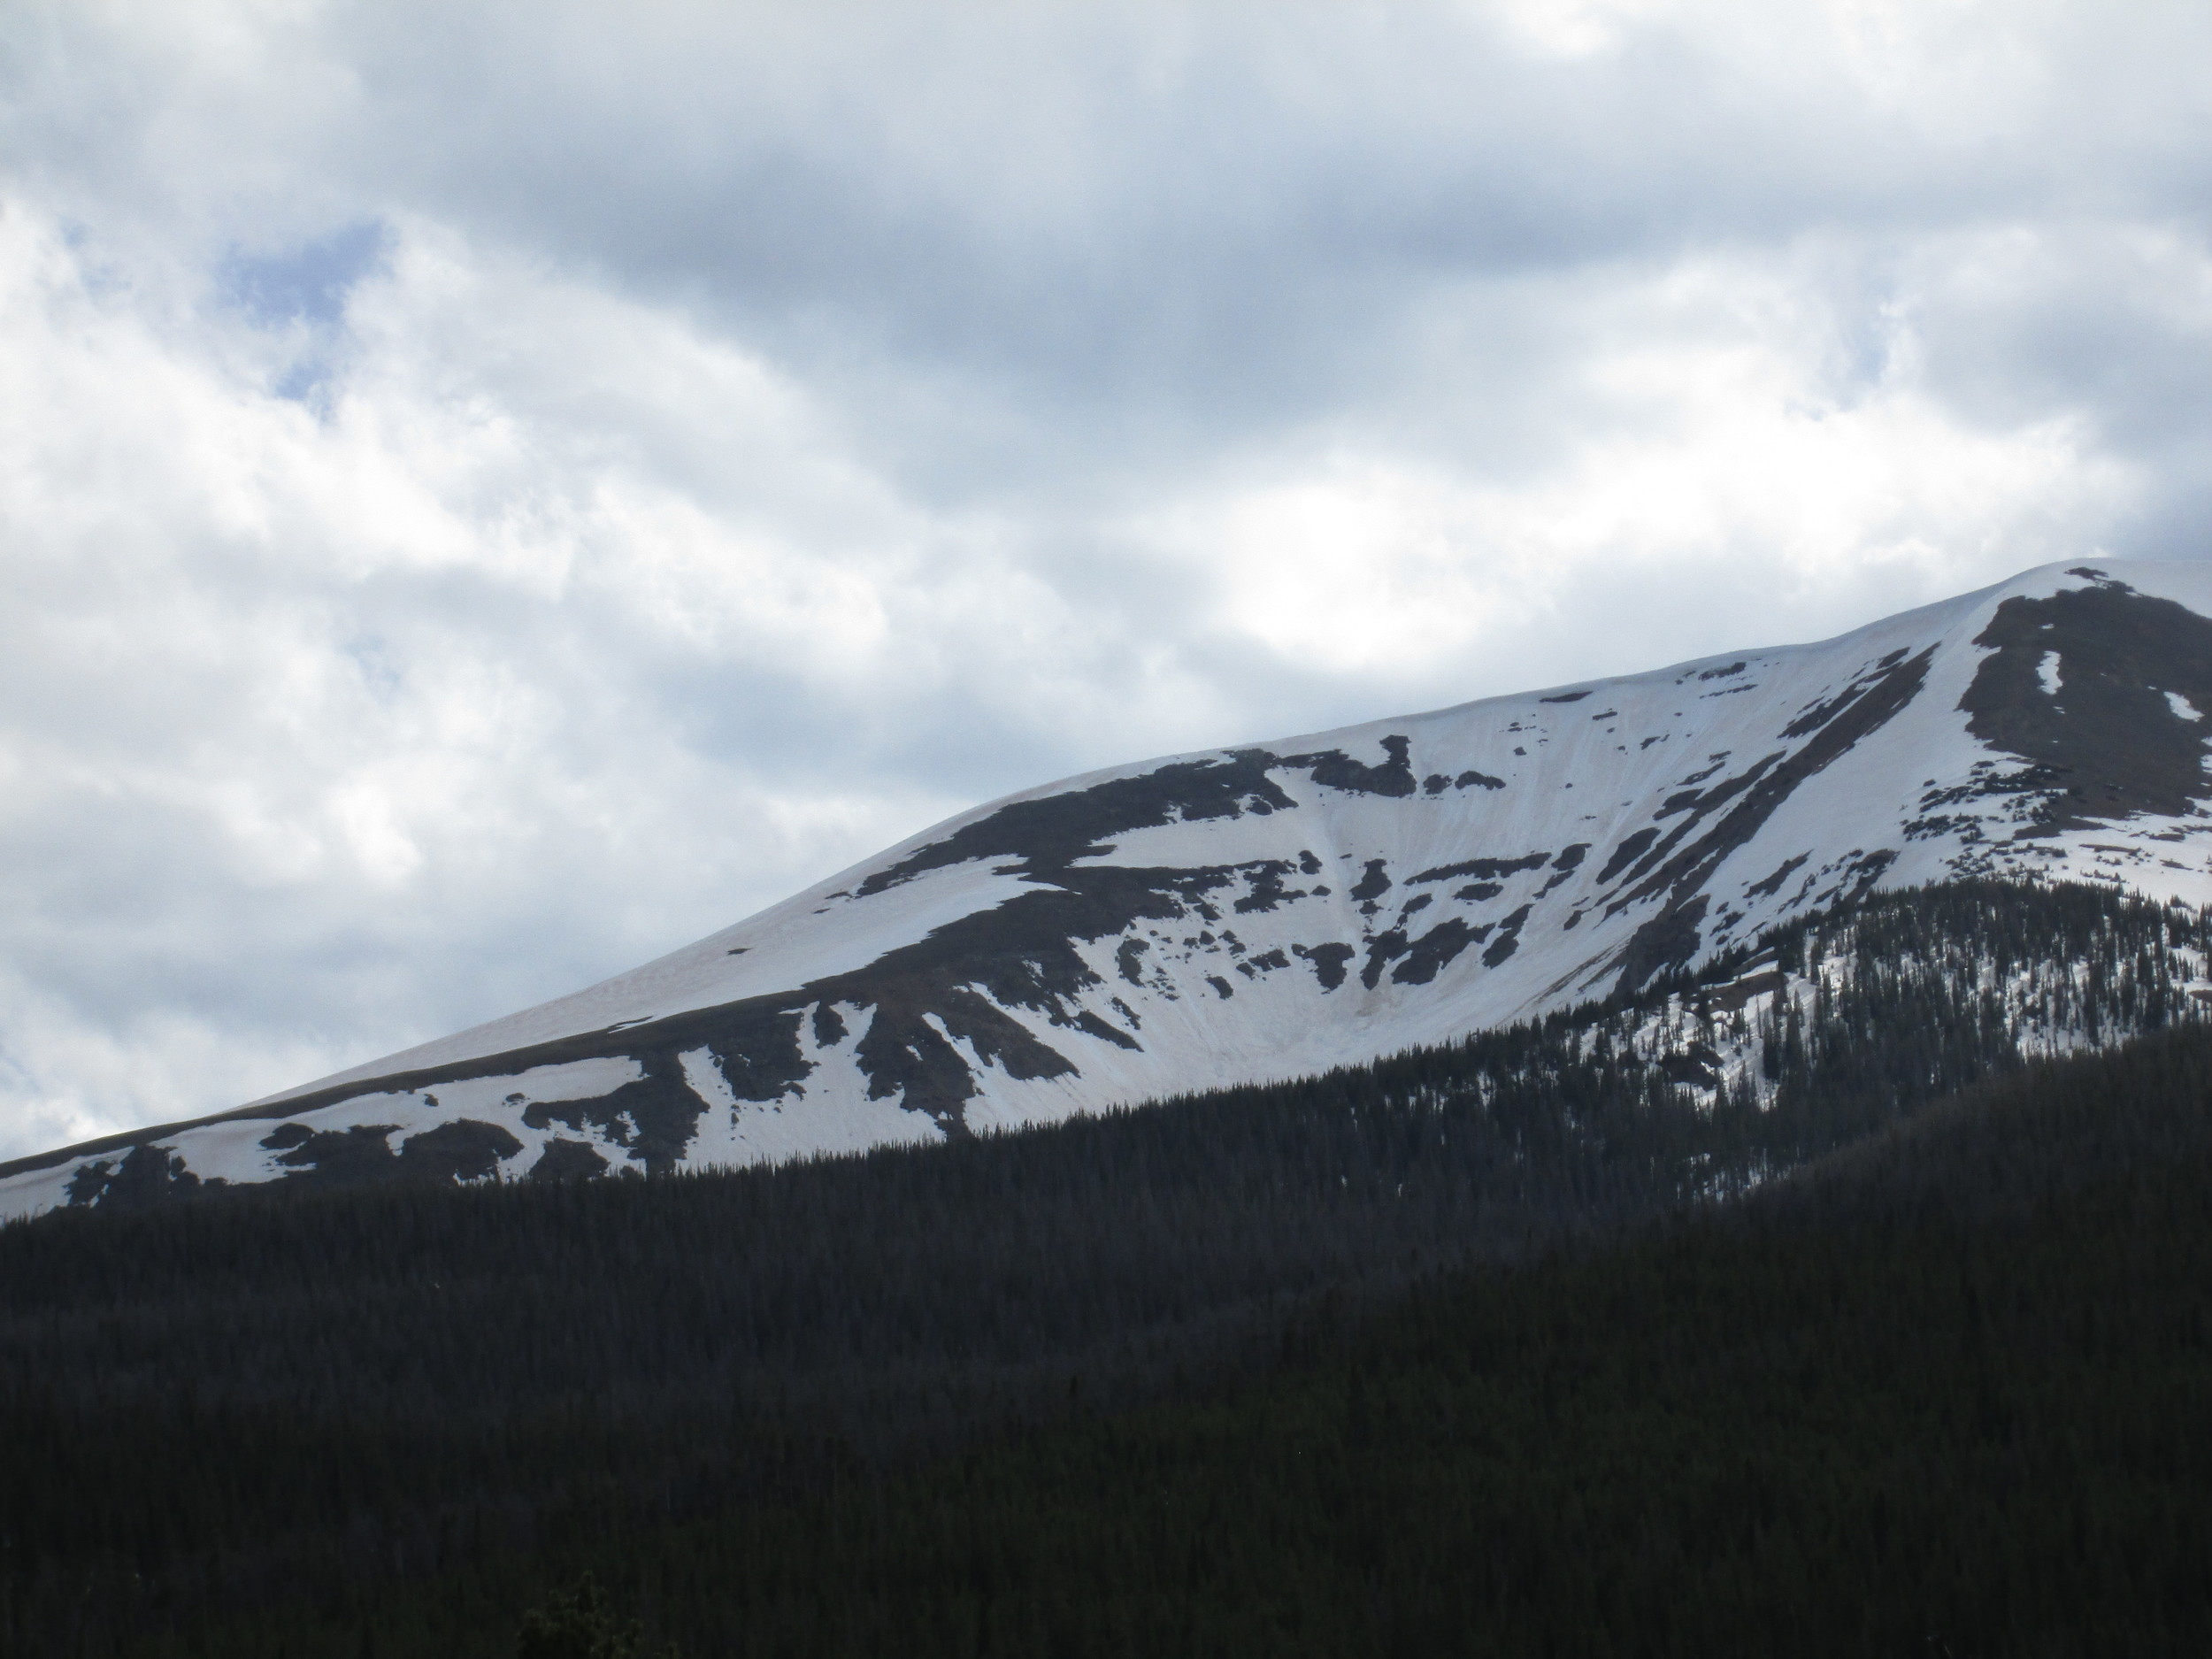 The characteristic fawn color of dust event D8, from May 11, was apparent on much of the snow surface on this east aspect of Parkview Mountain, interspersed with lingering patches of the Memorial Day weekend clean snowfall.